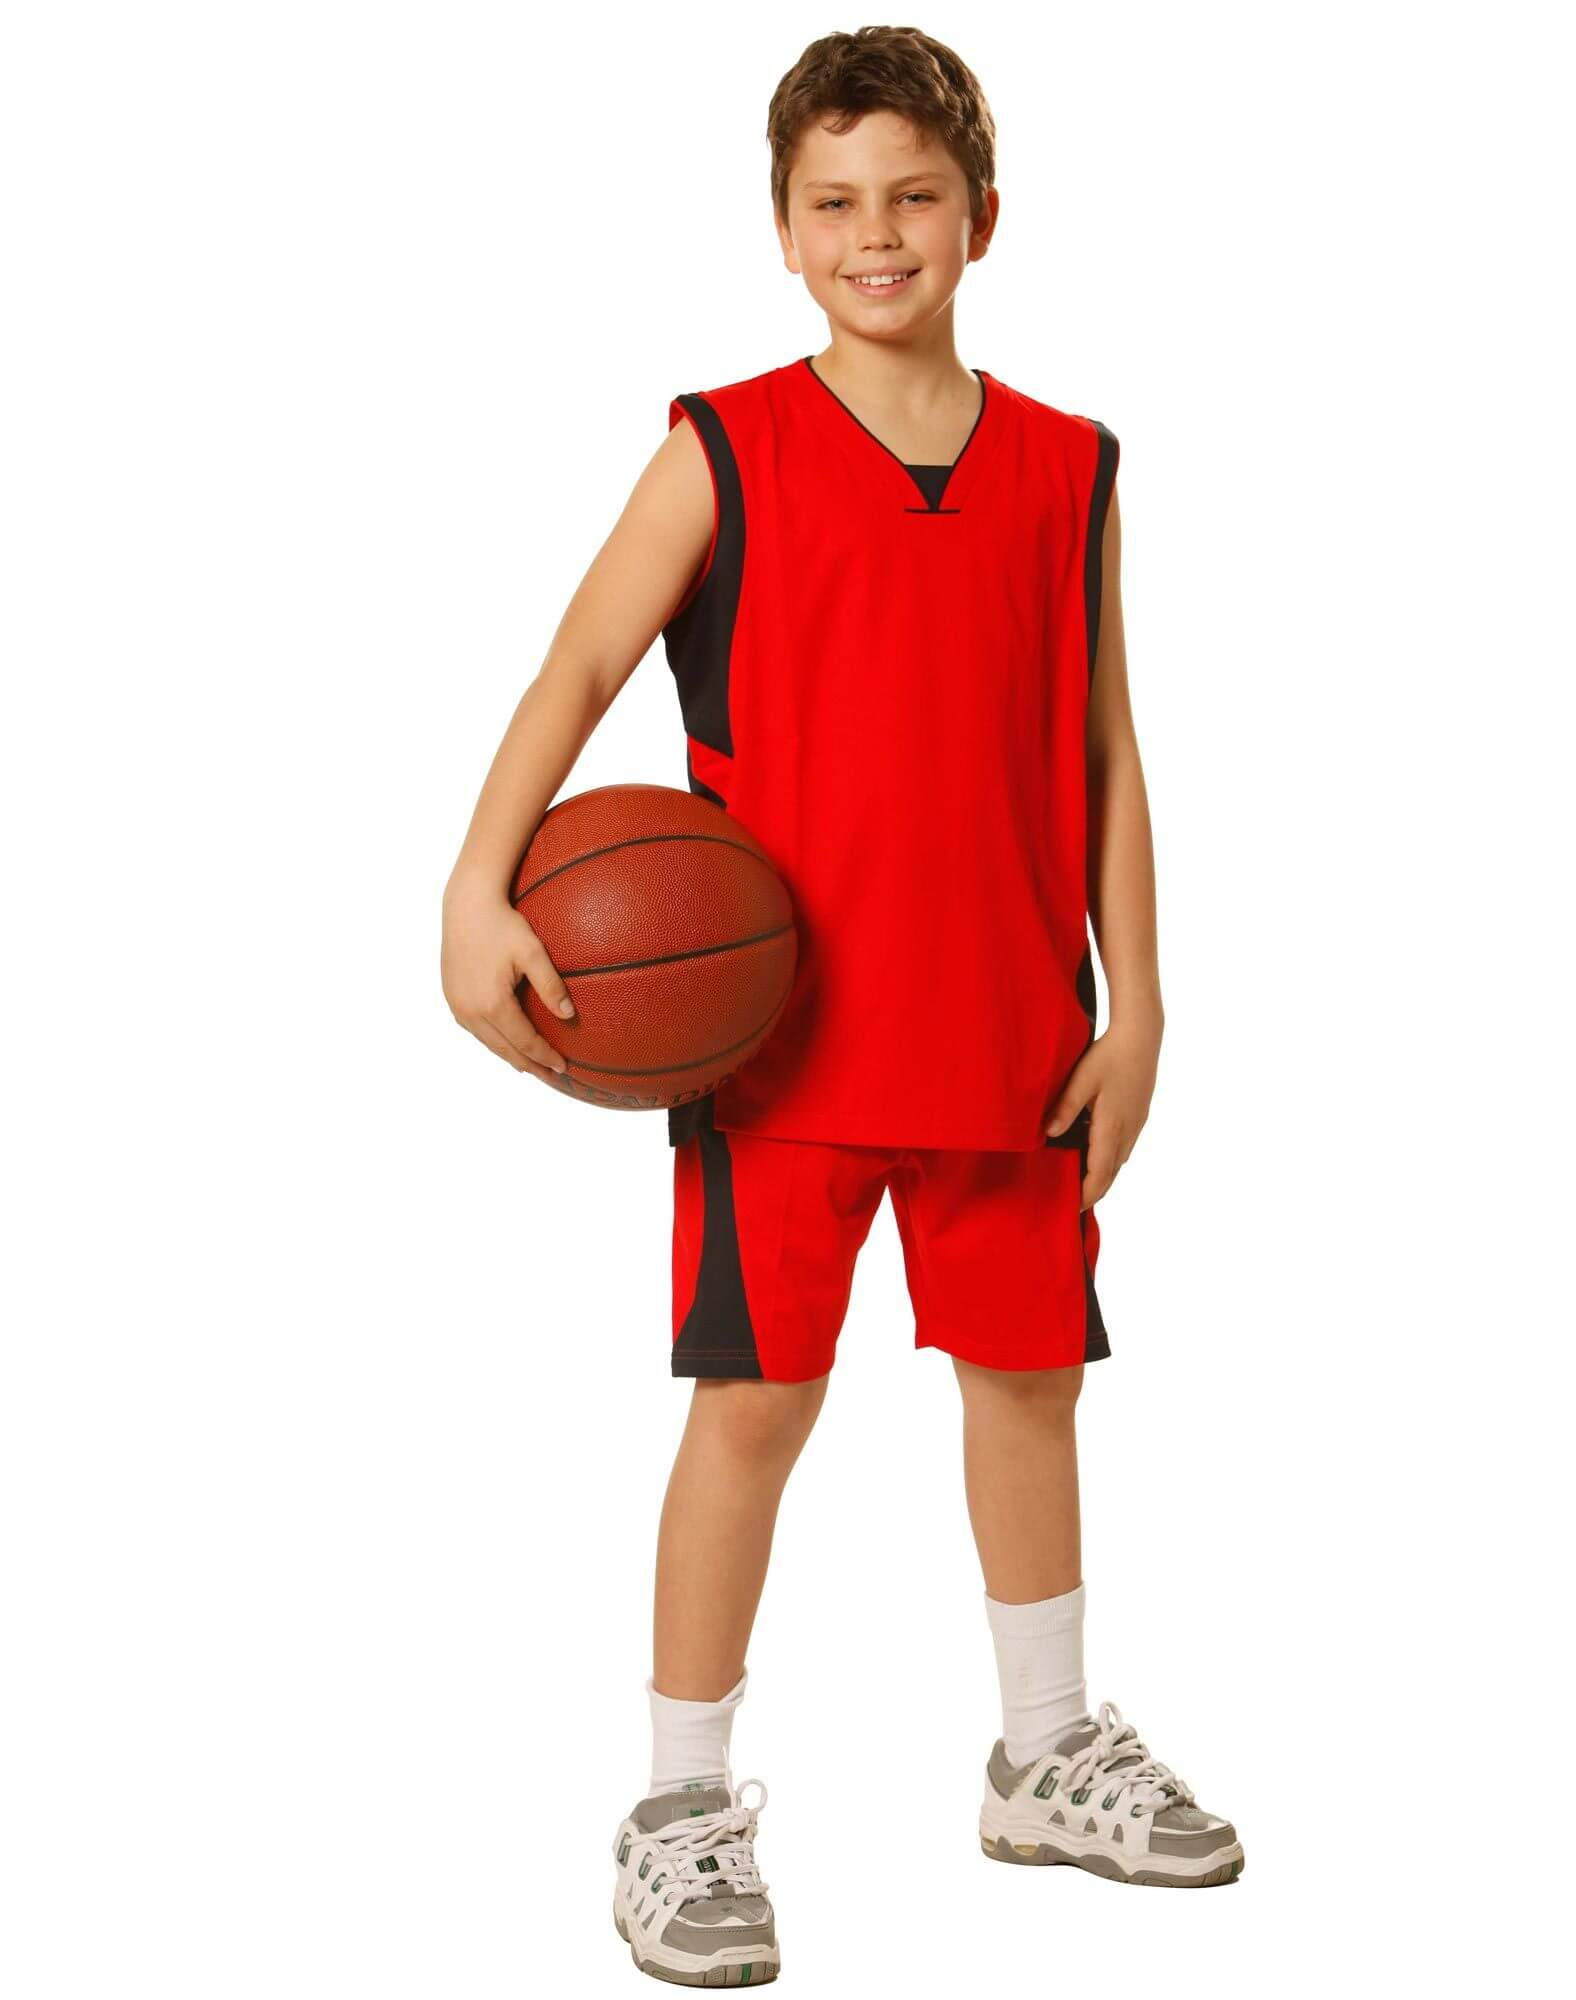 Kids Basketball Jerseys Manufacturers in Siliguri